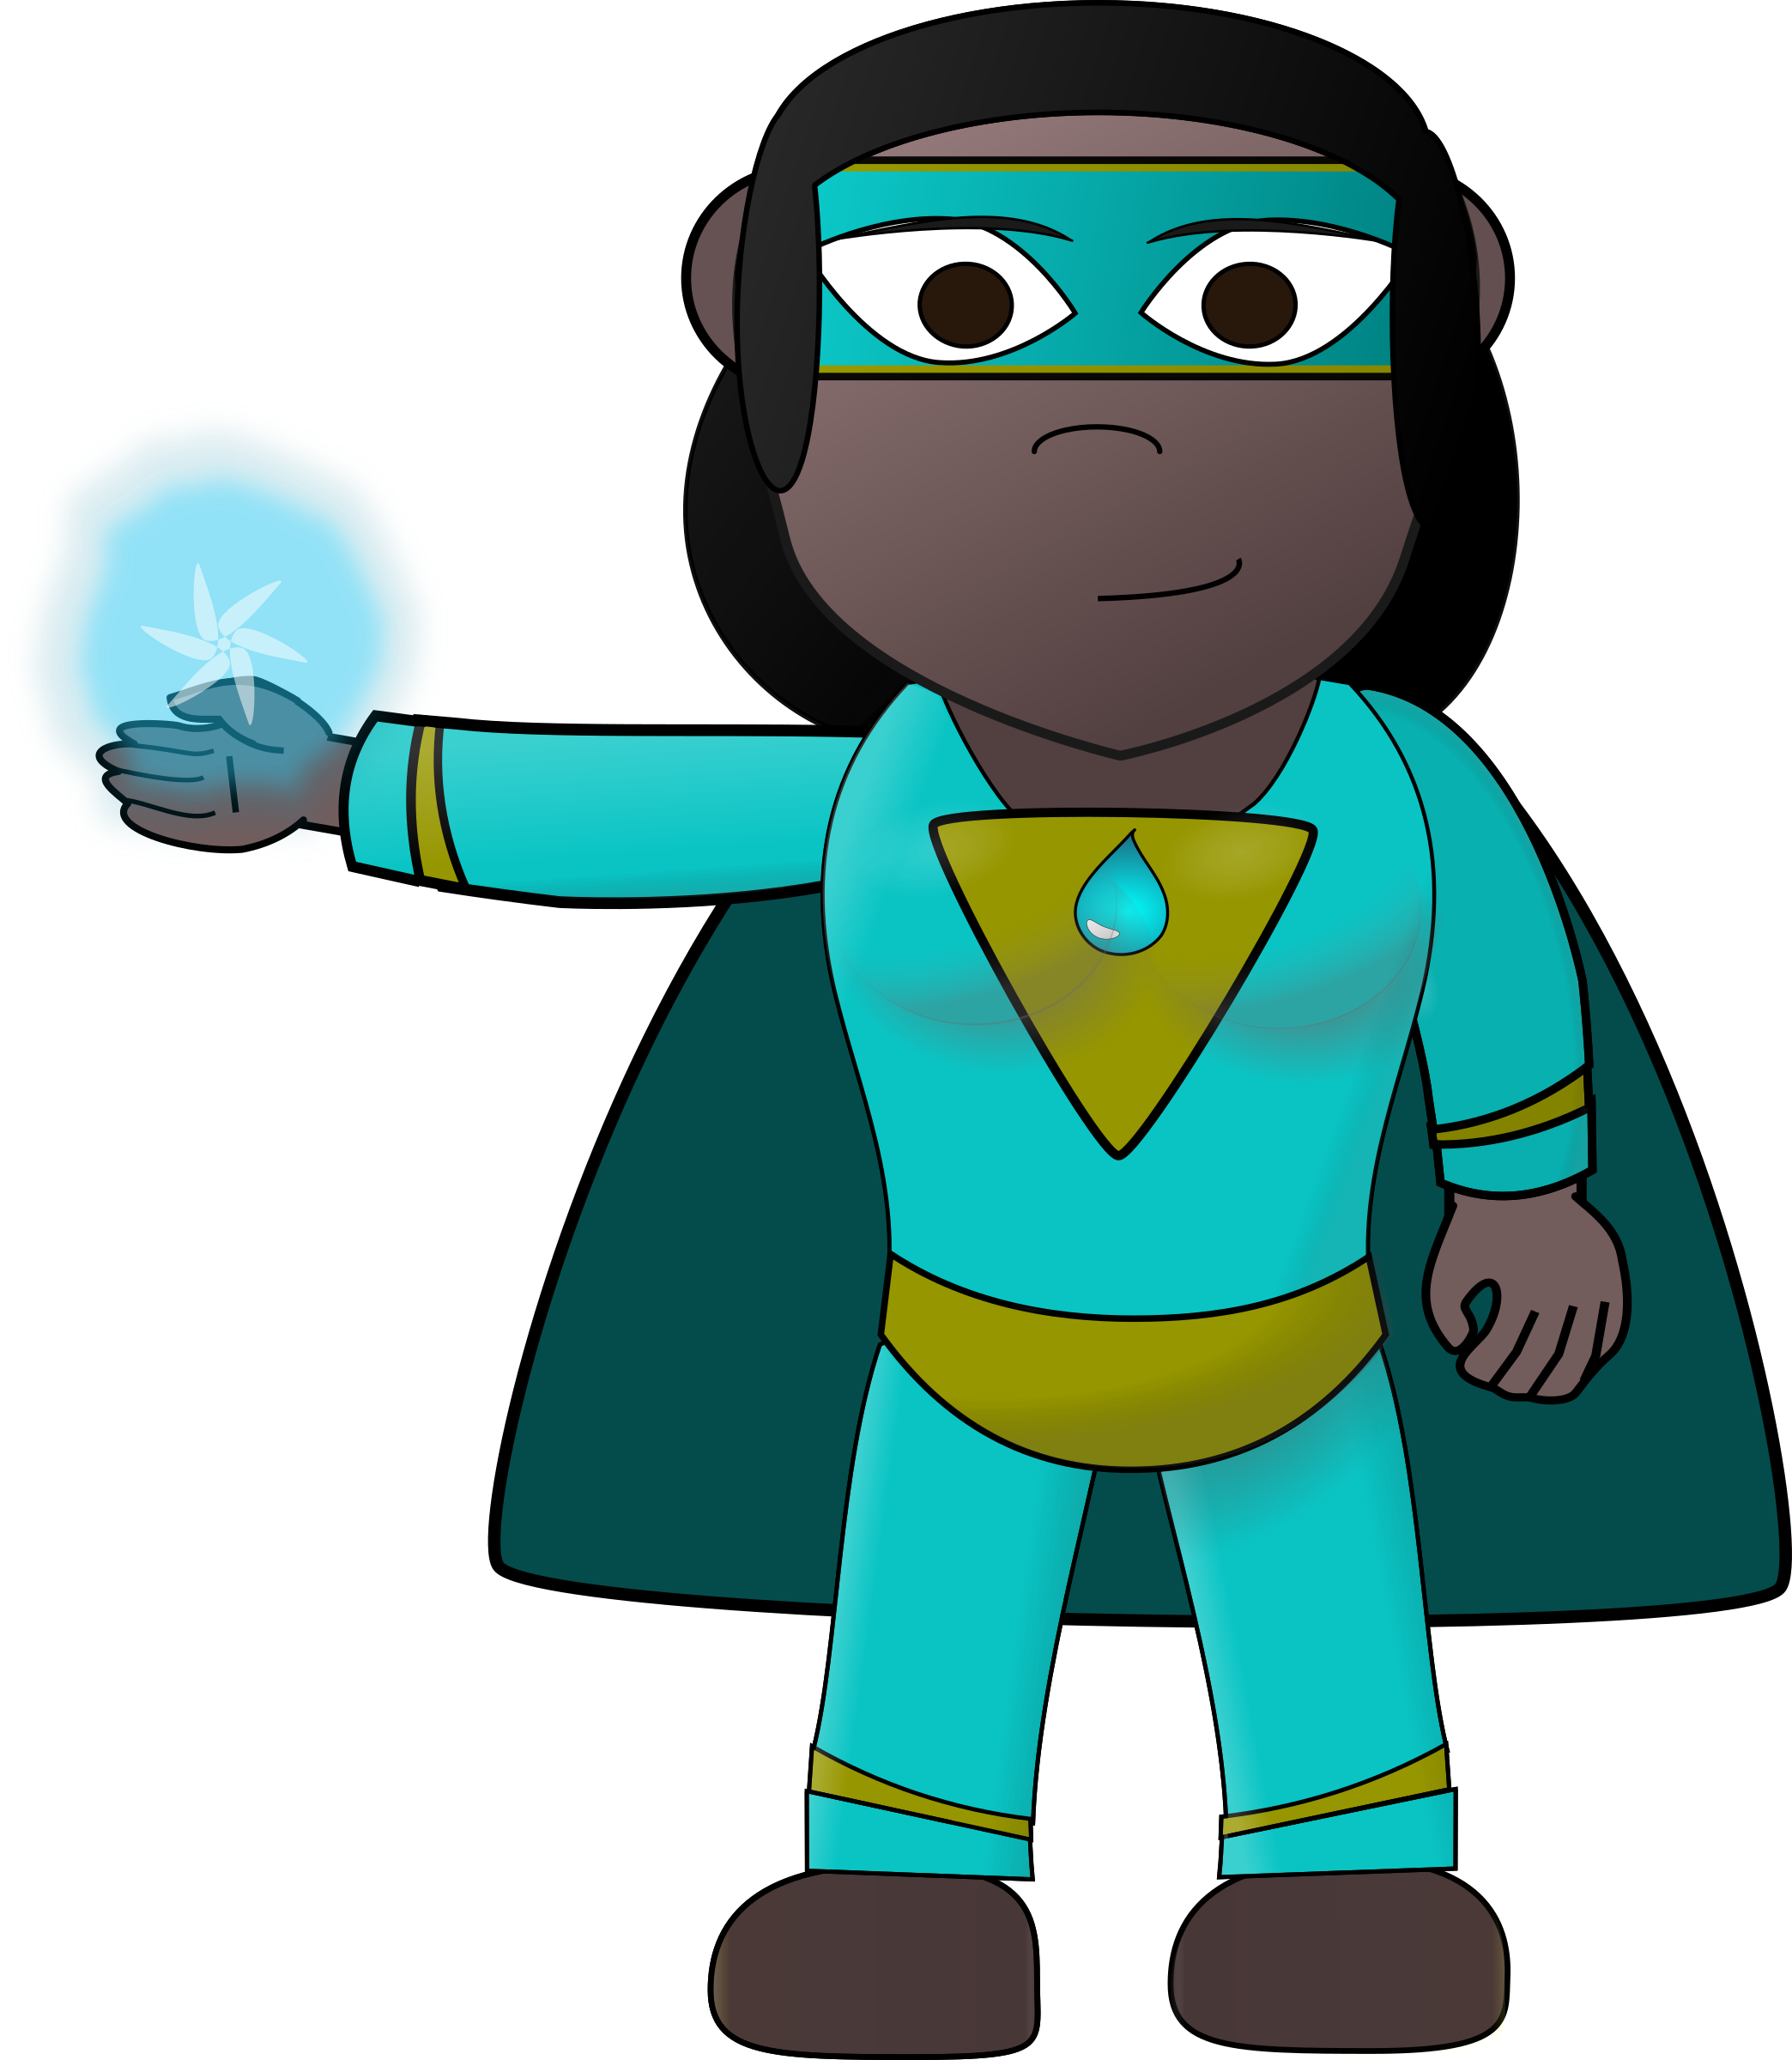 superhero clipart free download - photo #25